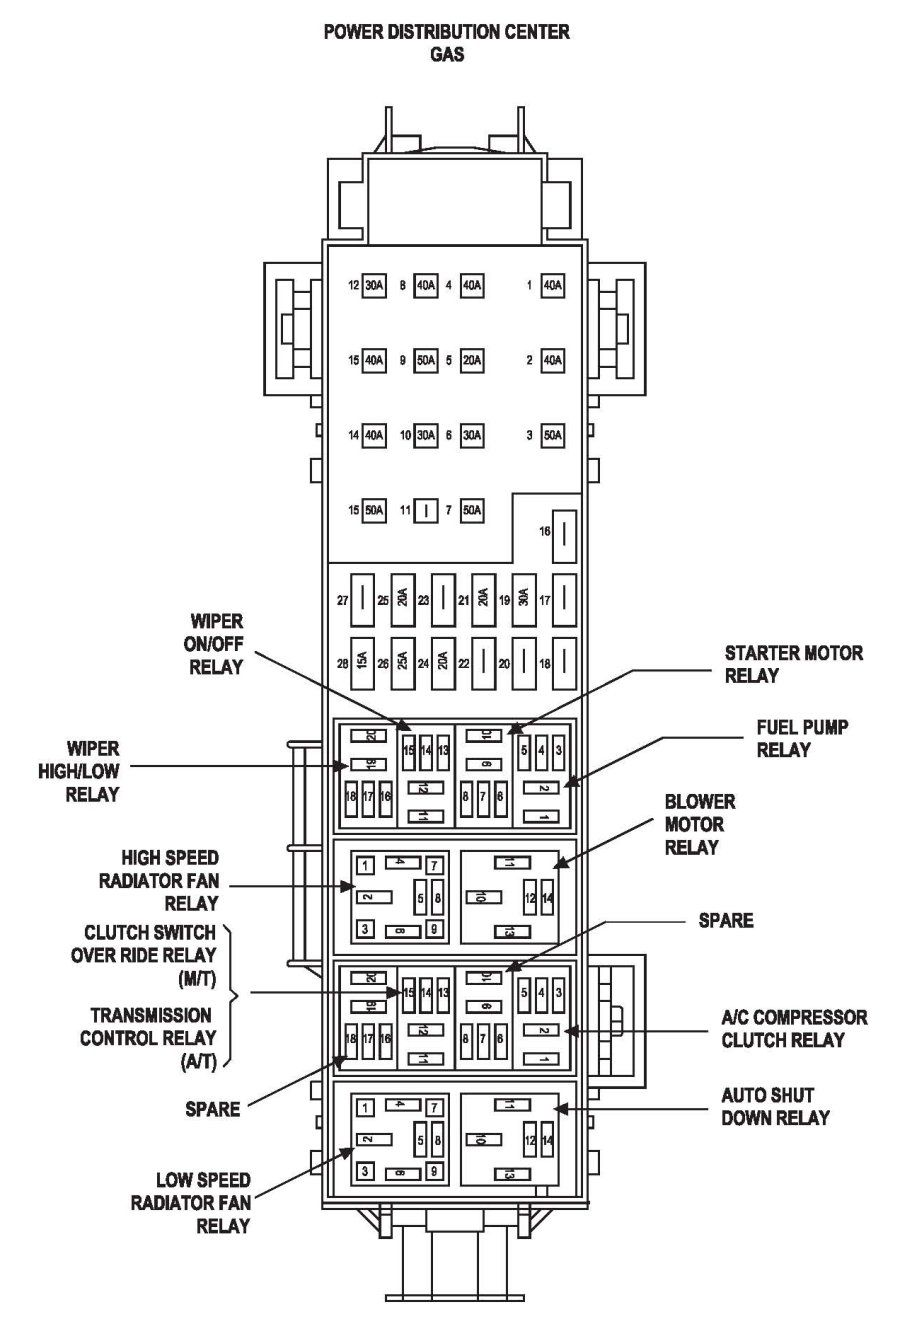 b3536c3739783eb19f827744cc42c3c4 jeep liberty fuse box diagram image details jeep liberty jeep tj fuse box diagram at panicattacktreatment.co